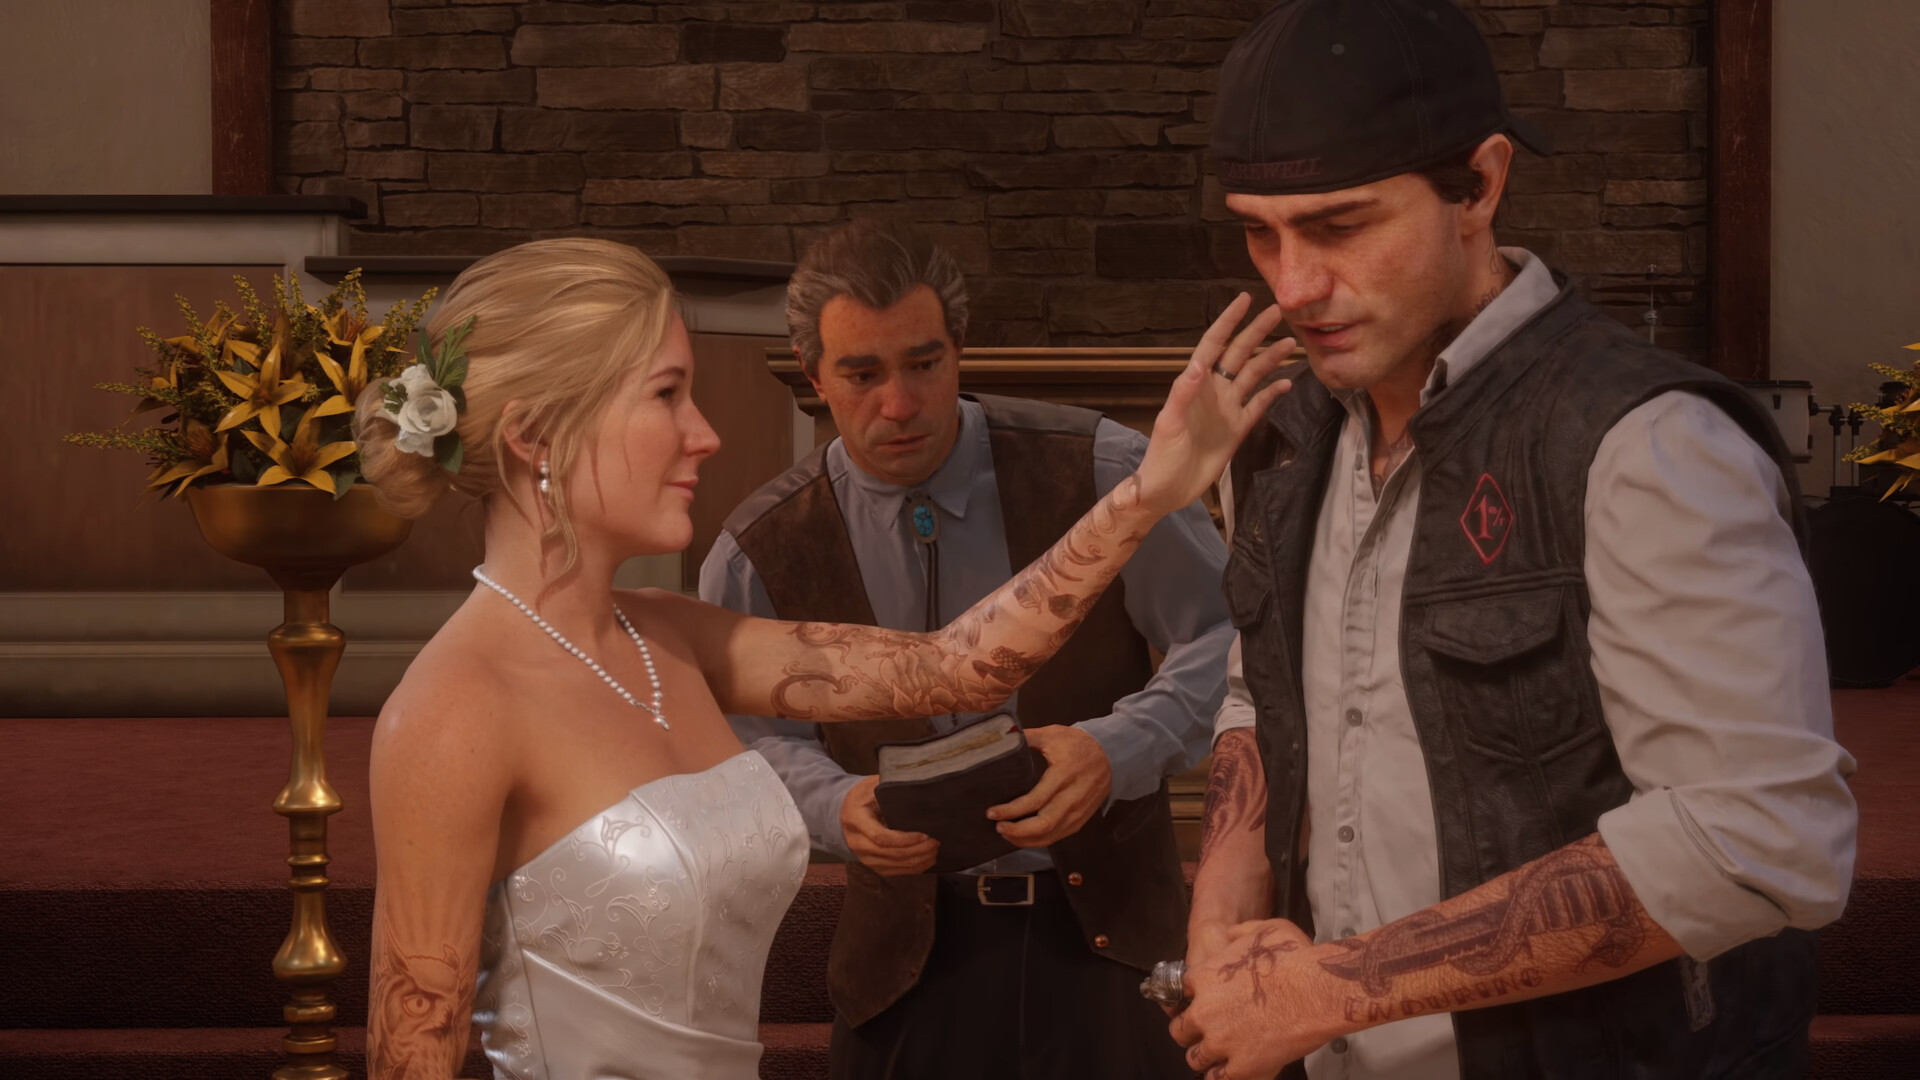 Dustin brown days gone sarah deacon s wedding ps4 1 1 screenshot